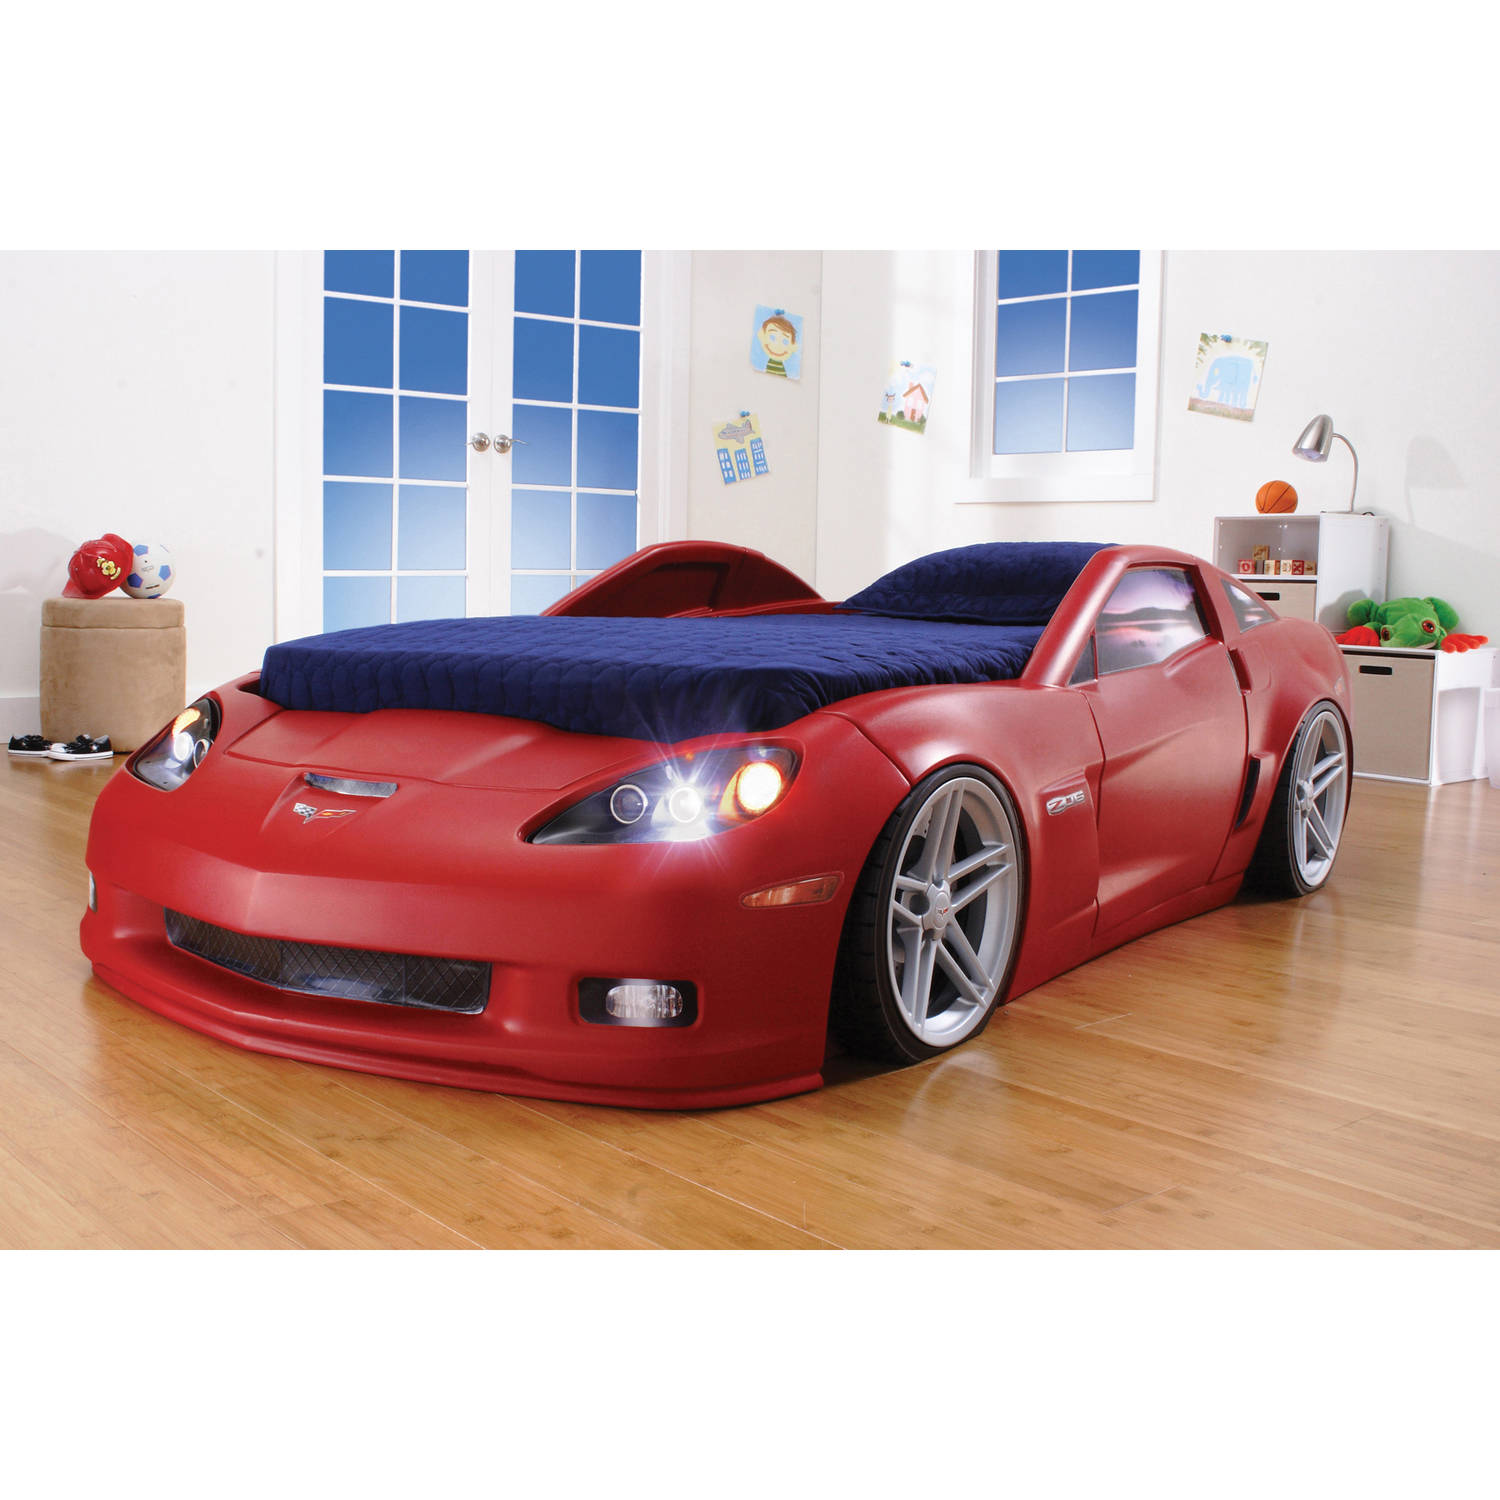 Attractive Step2 Corvette Convertible Toddler To Twin Bed With Lights, Red    Walmart.com